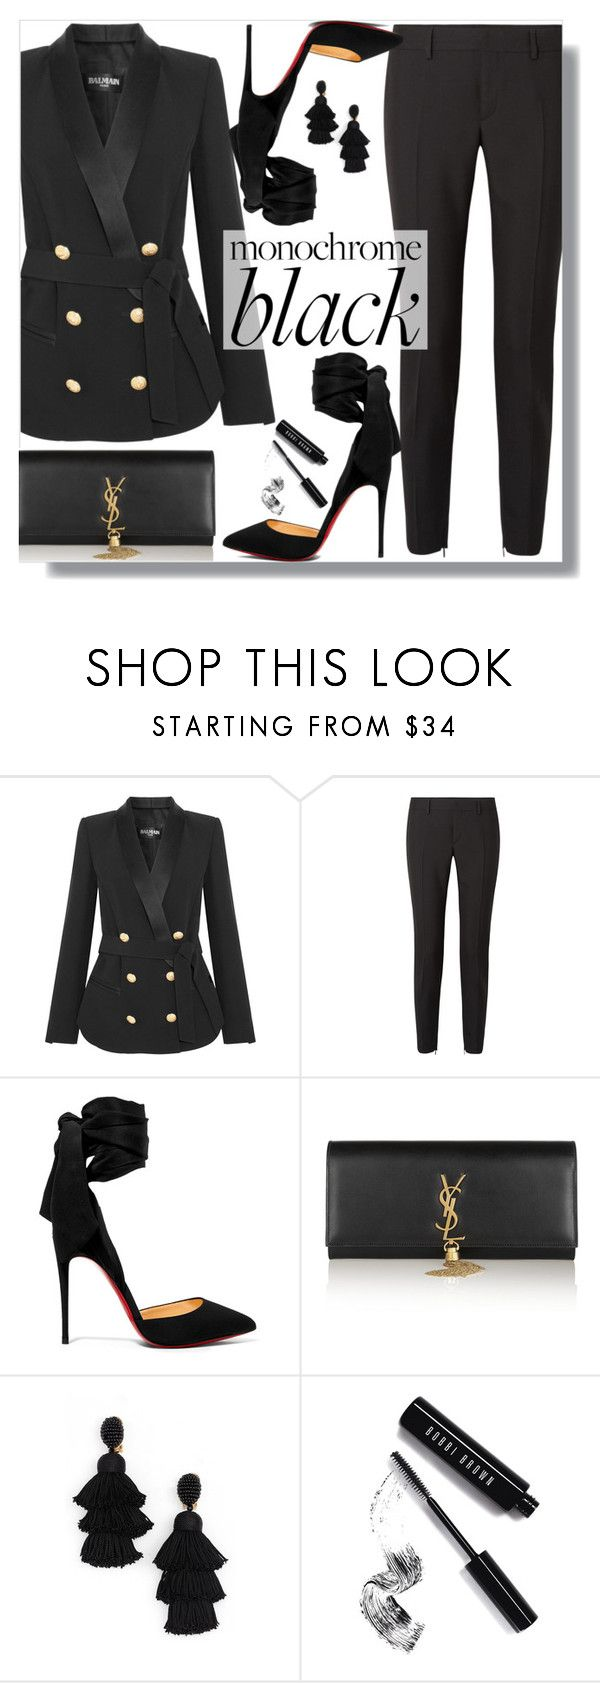 """Mission Monochrome: All-Black Outfit"" by loewenangel ❤ liked on Polyvore featuring Balmain, Yves Saint Laurent, Christian Louboutin, Oscar de la Renta and Bobbi Brown Cosmetics"